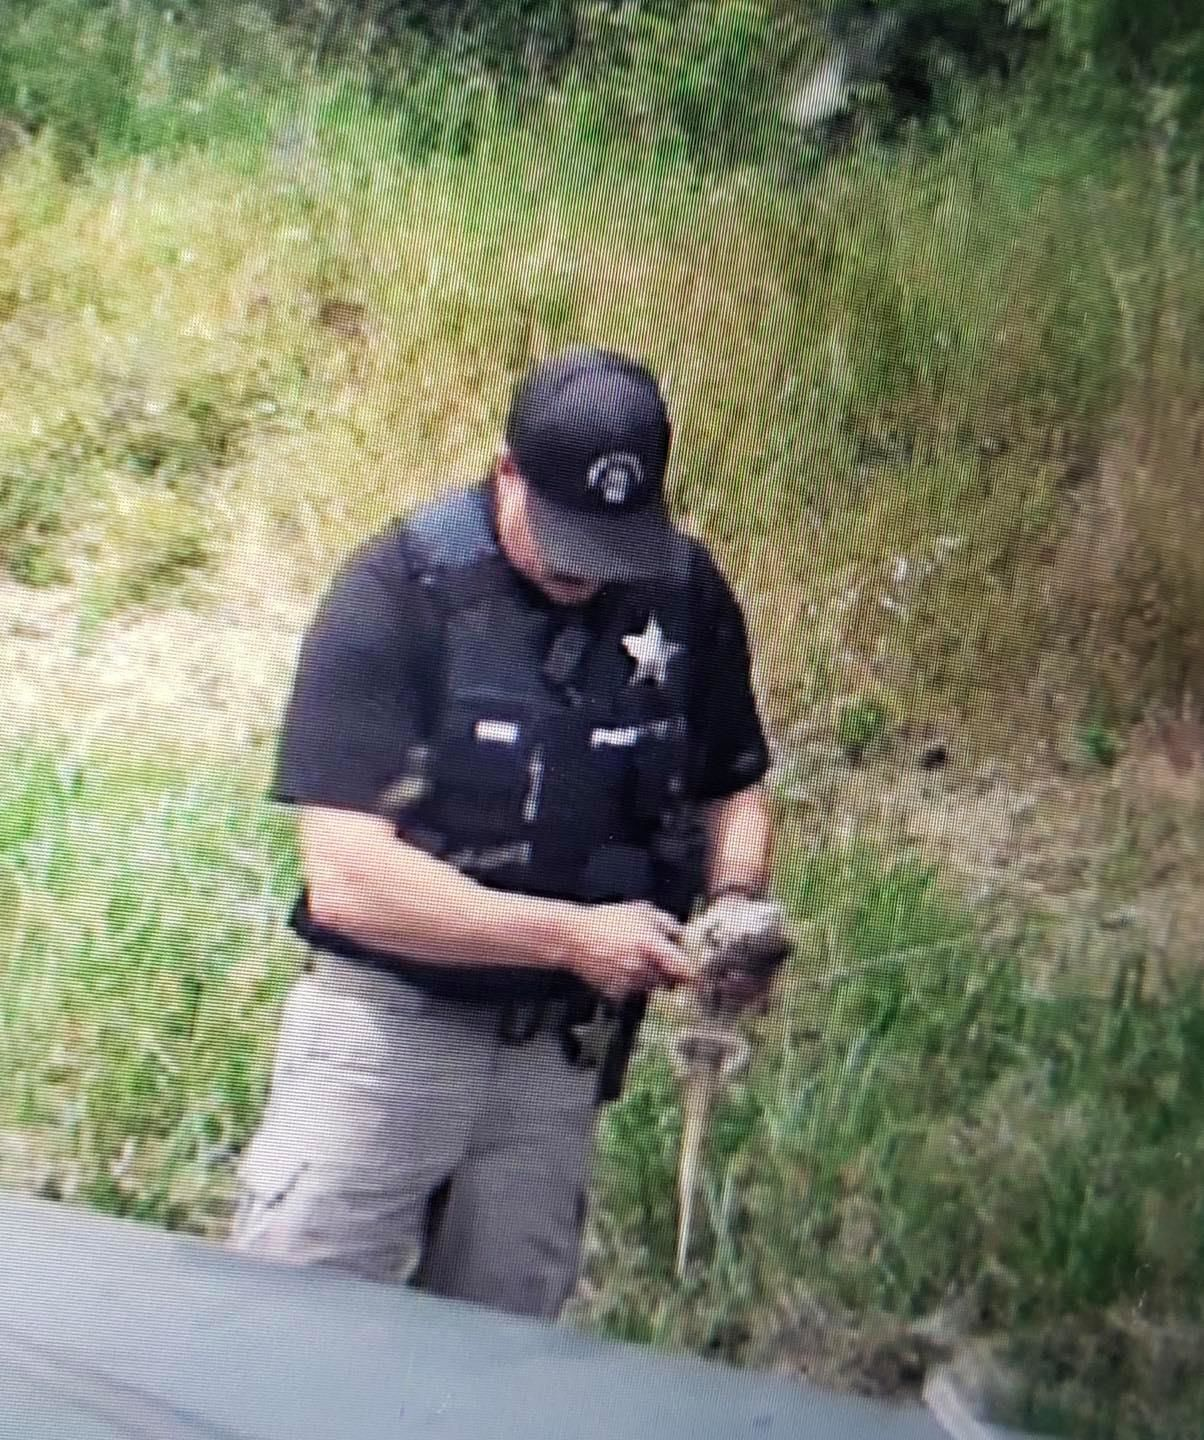 "<p>Oregon State Police Sgt. Clay Core was near the corner of Marcola Road & 42nd Street in Springfield on Tuesday ""came across something very strange looking crossing the road."" The trooper pulled over to investigate - and a green dragon poked its head out of the grass. (OSP)</p>"